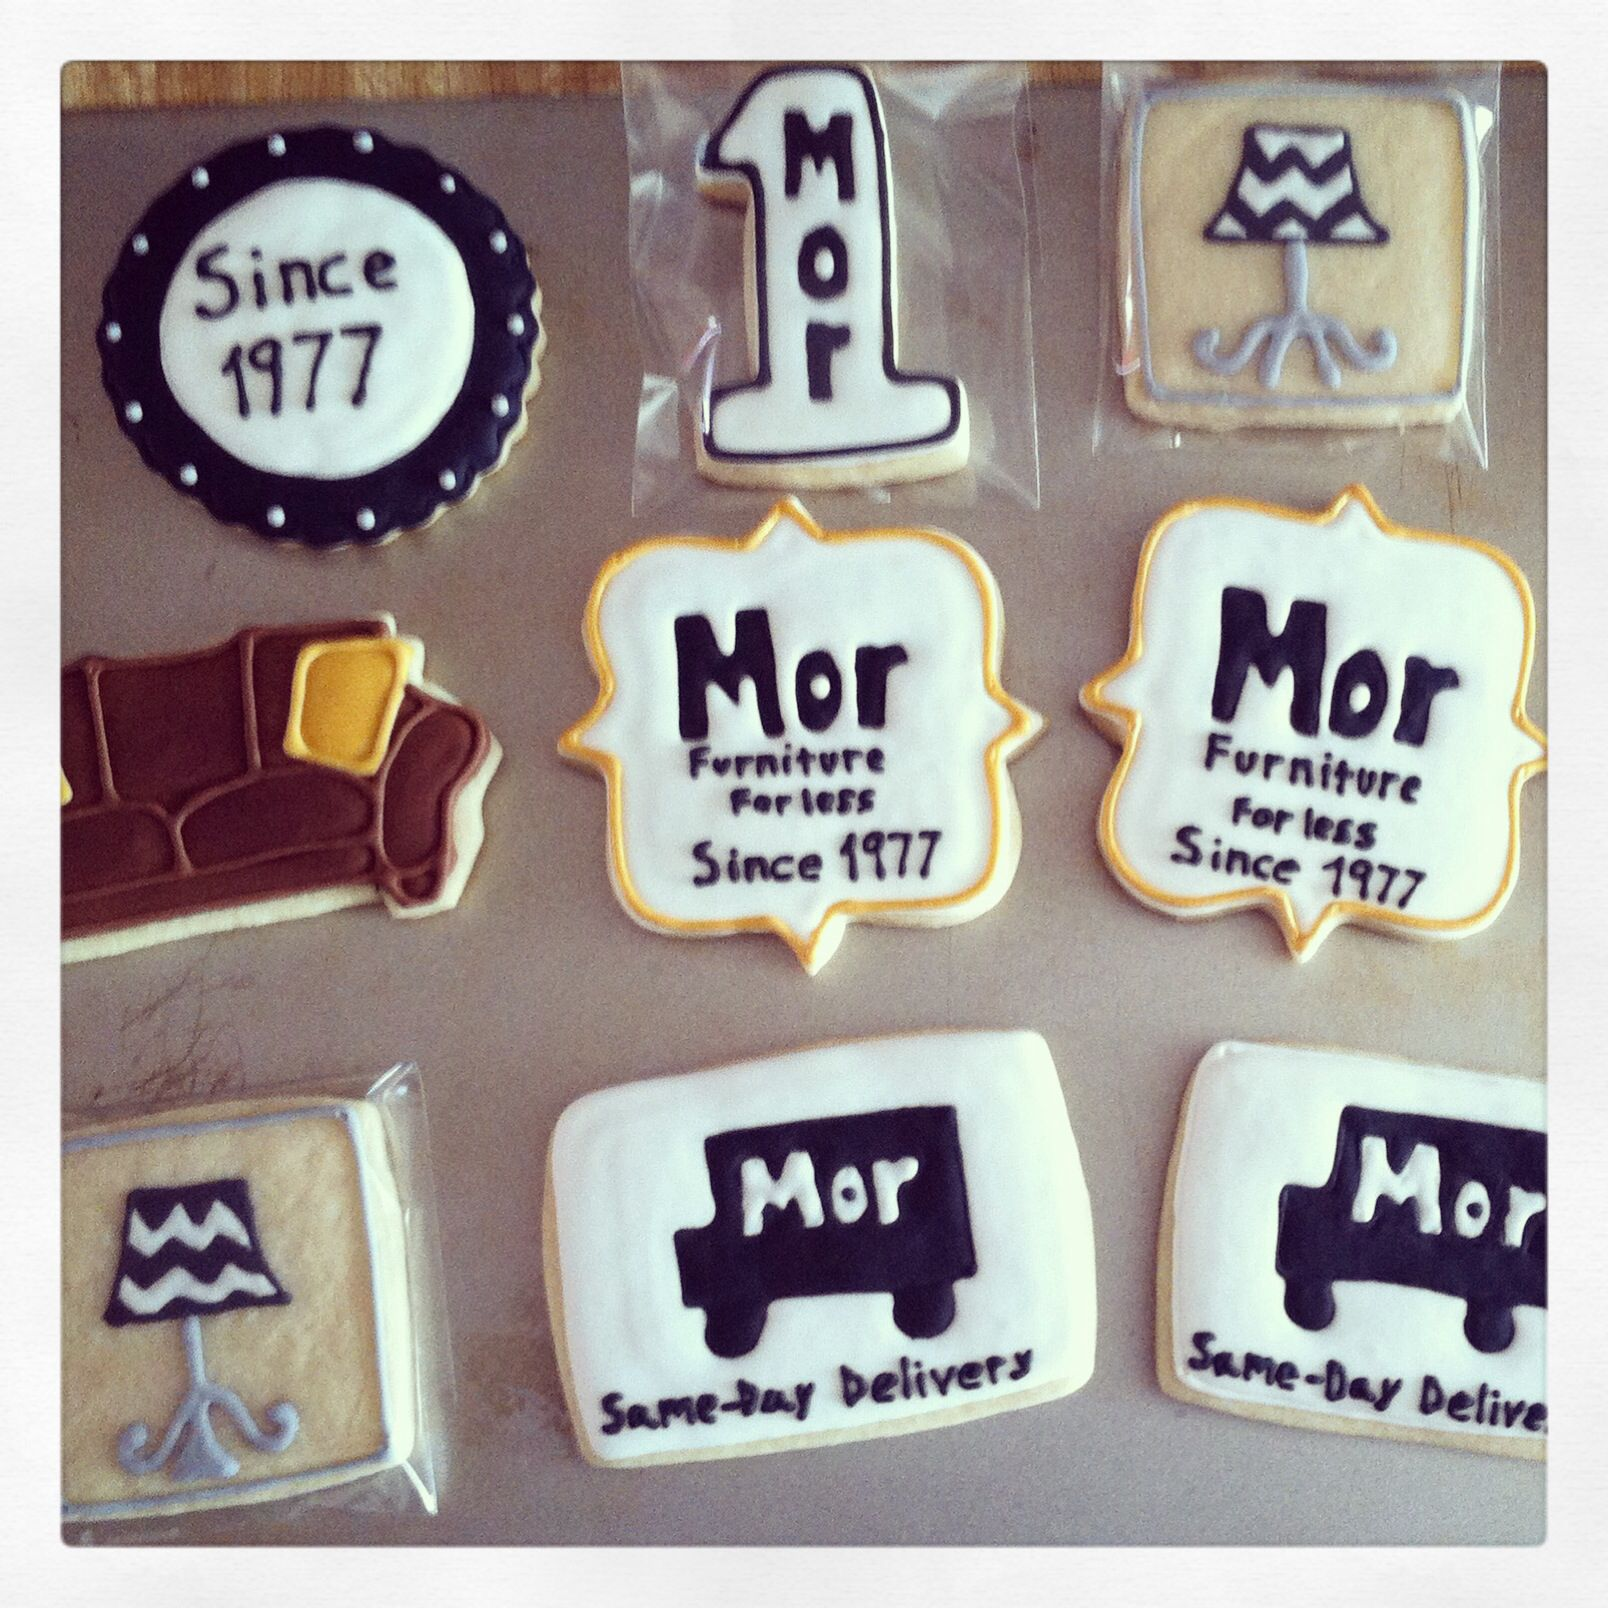 More Furniture For Less: Decorated Sugar Cookies For Mor Furniture For Less, The